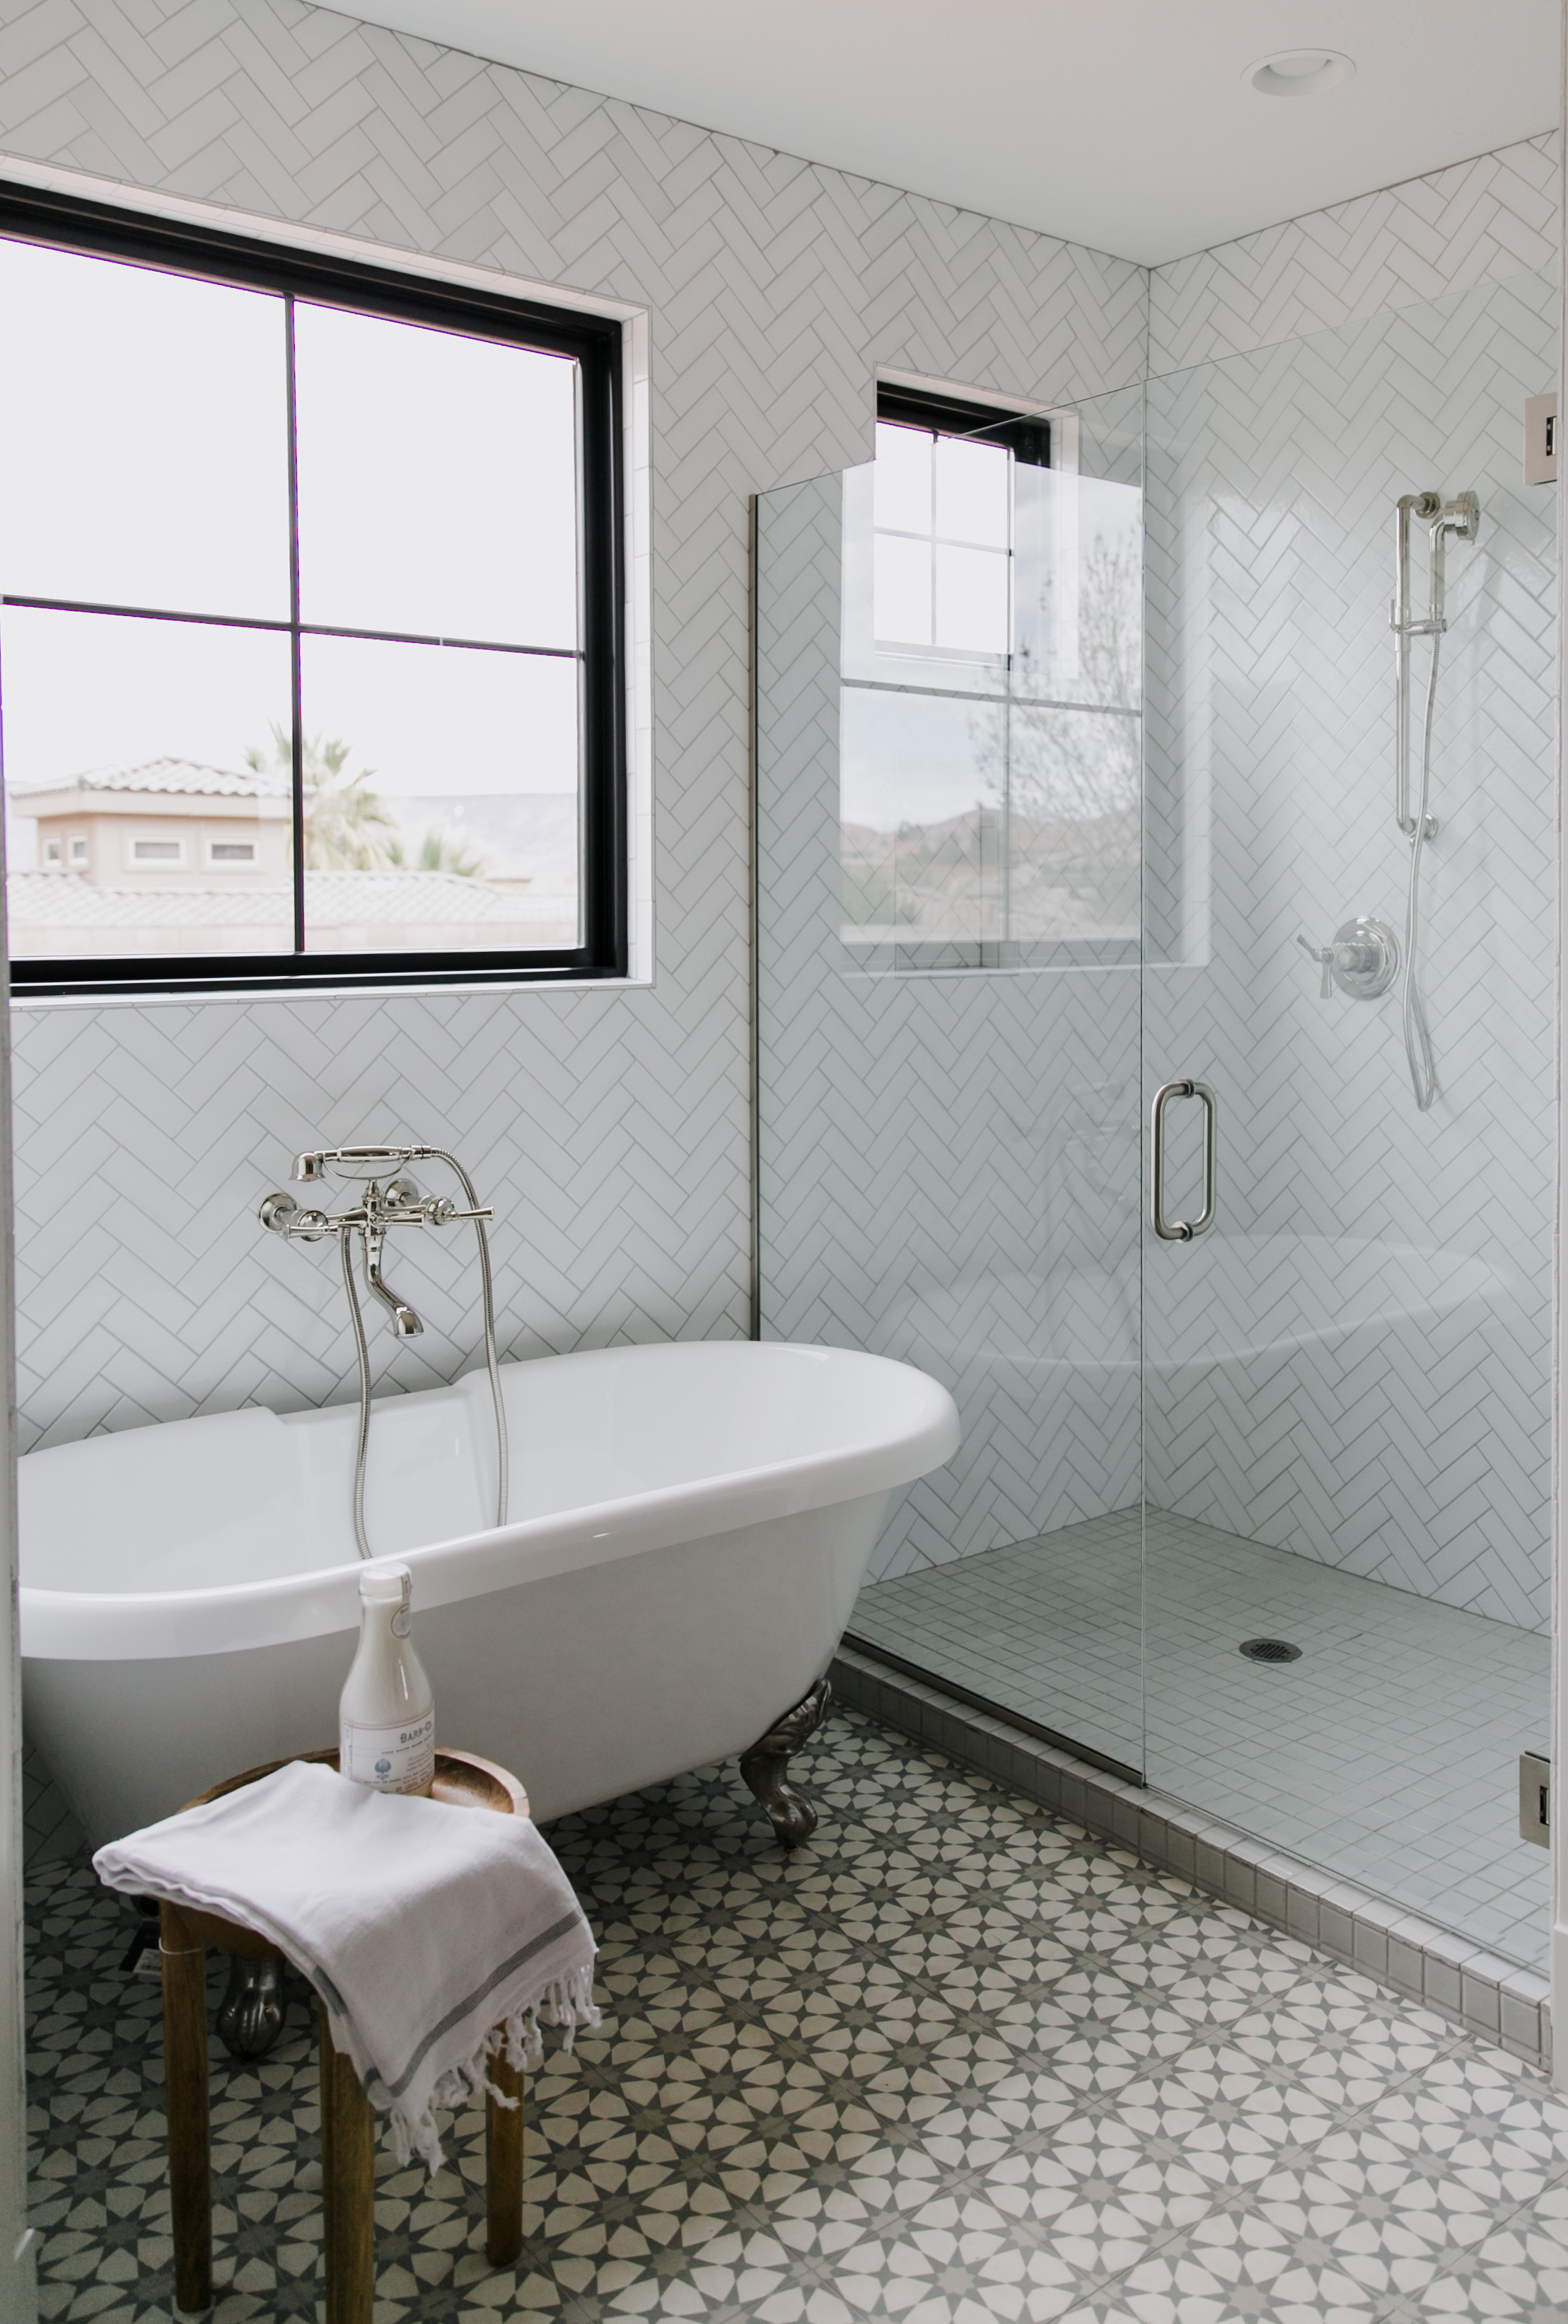 Ceramic and cement tiles in perfect harmony in this master bath that features our 2x6 tiles in White Wash in a herringbone pattern.